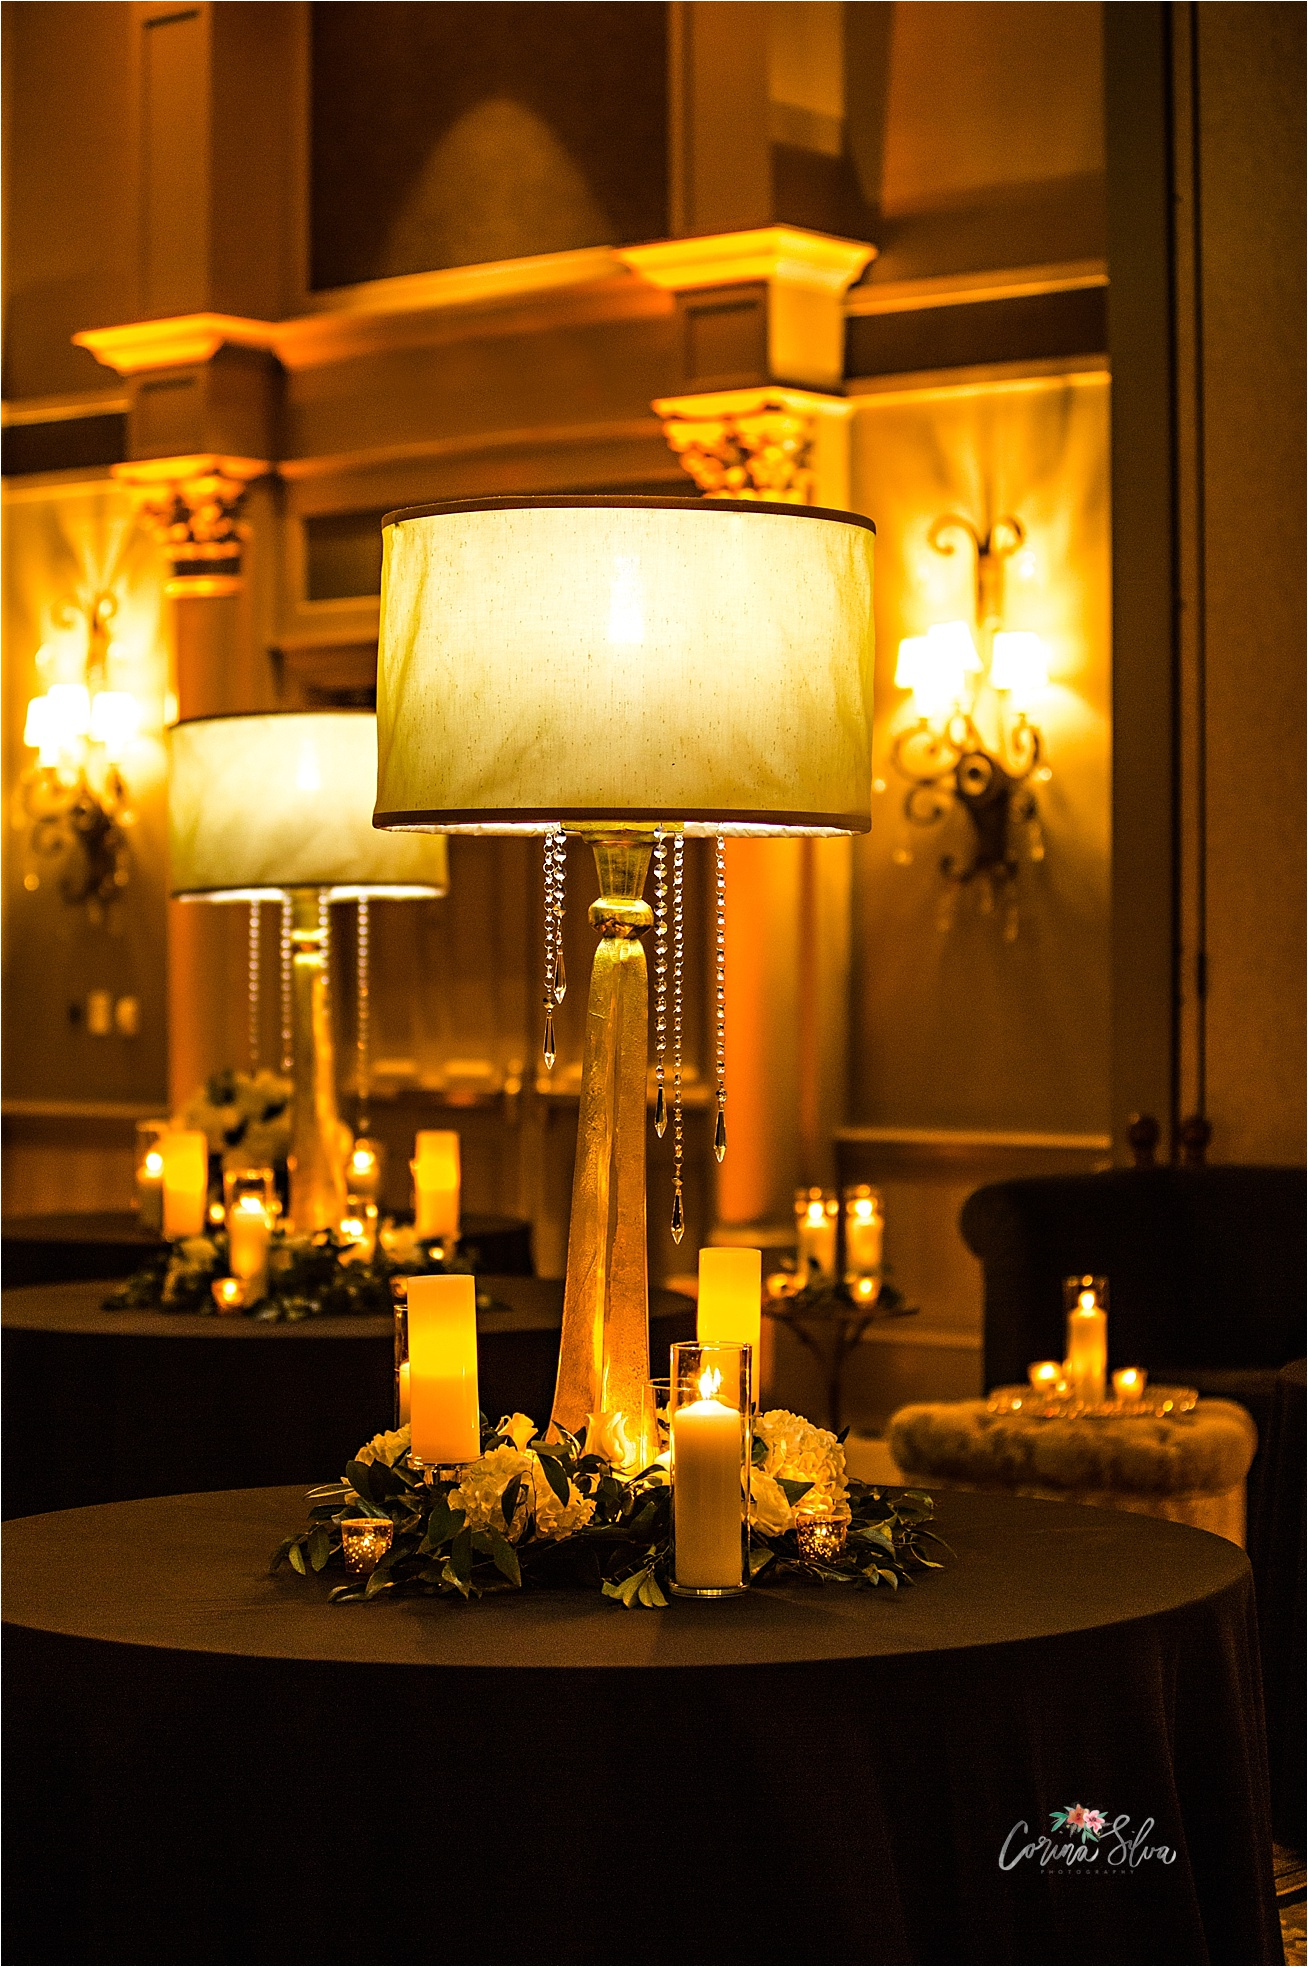 RSG-Event-and-Designs-luxury-wedding-decor-photos, Corina-Silva-Studios_0030.jpg